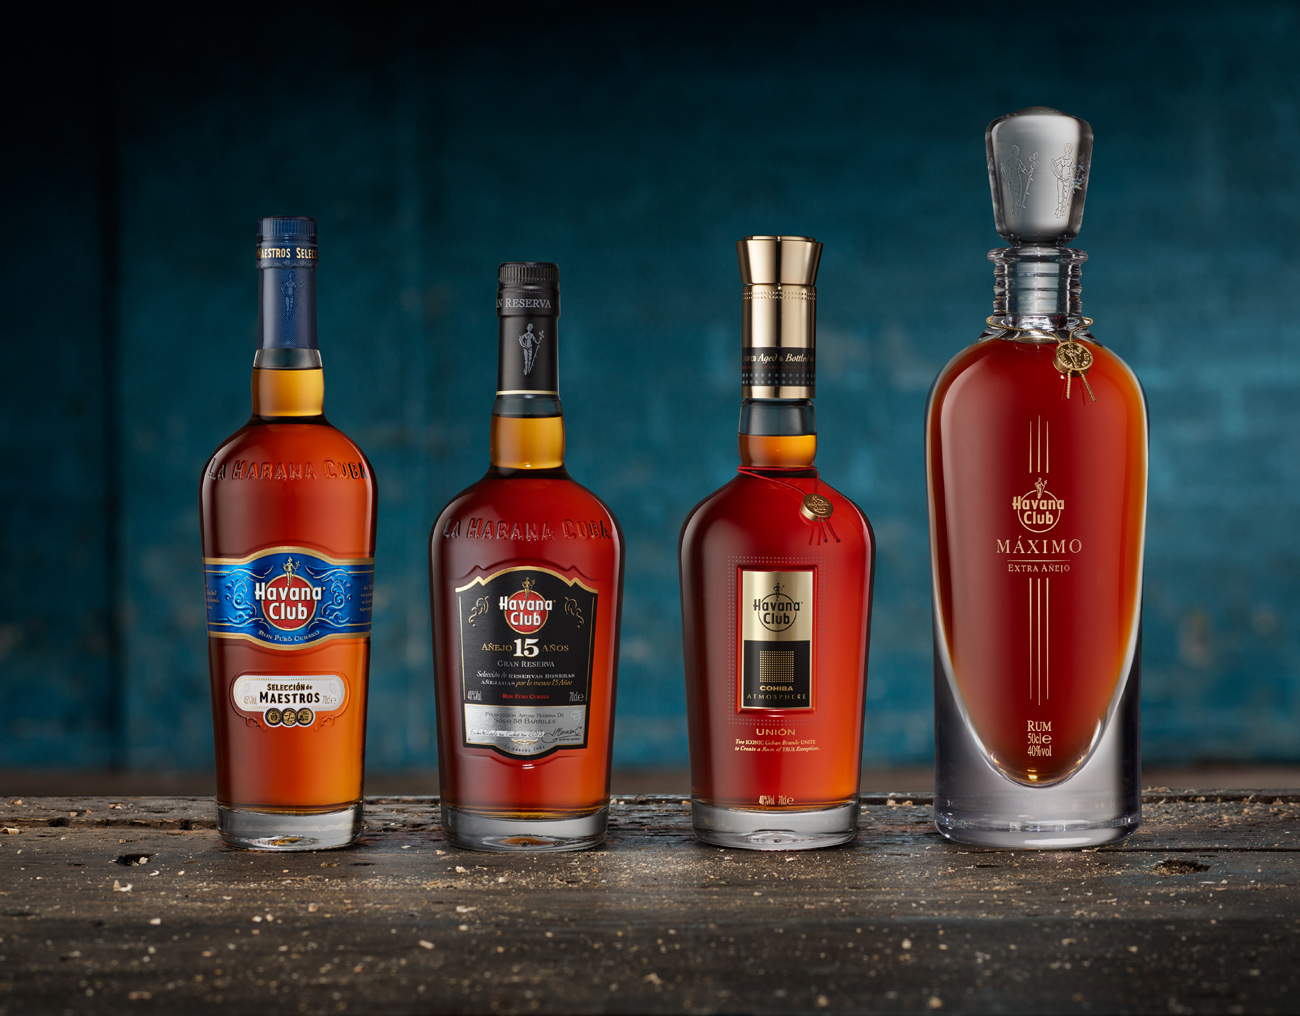 Havana Club range of bottles